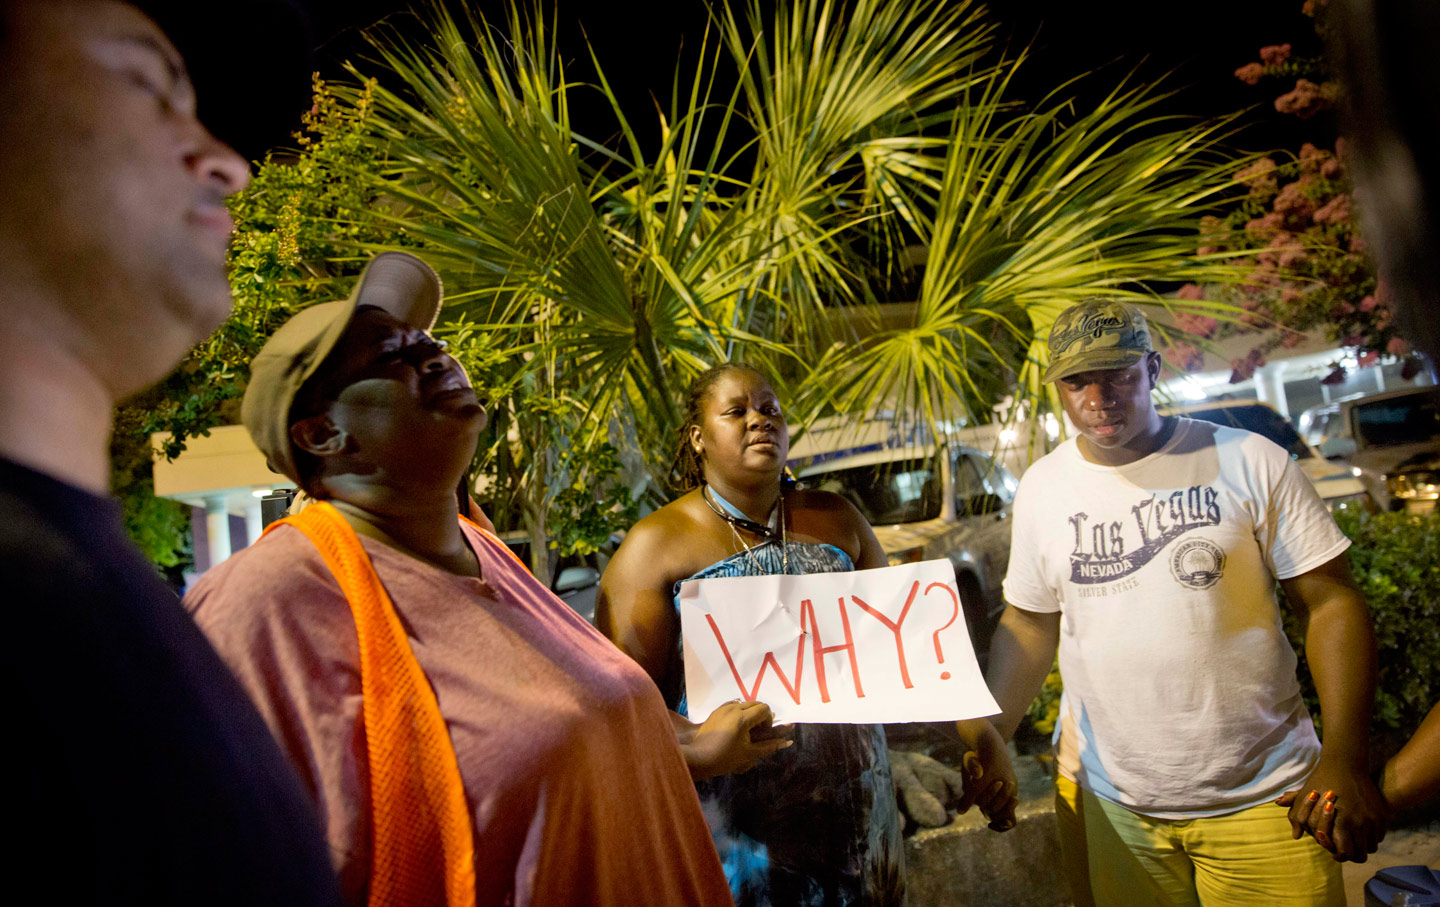 Surreace Cox, of North Charleston, South Carolina, holds a sign during a prayer vigil down the street from the Emanuel AME Church following the mass shooting there.